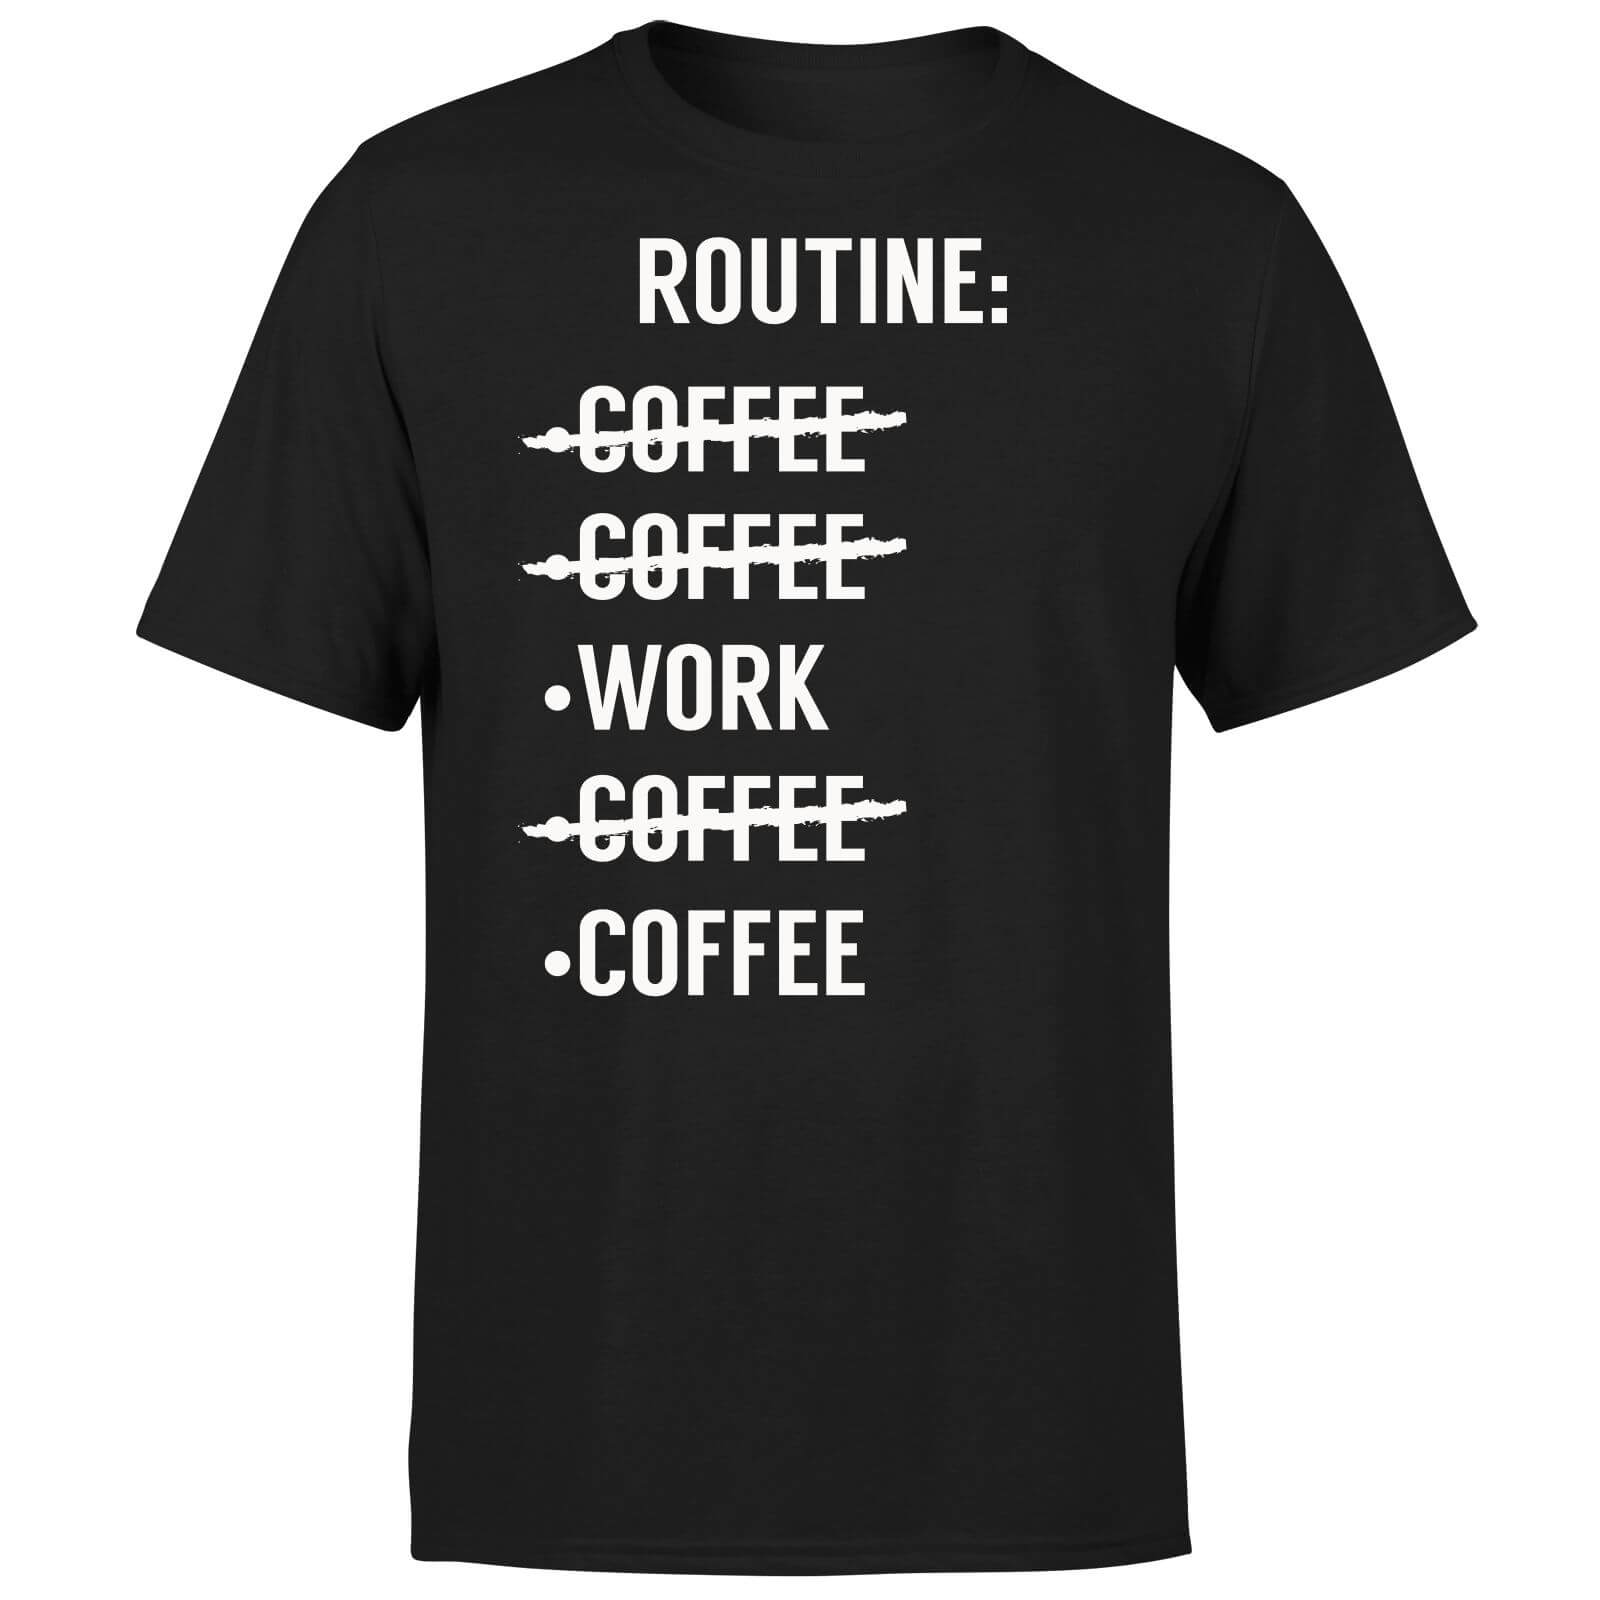 Coffee Routine T-Shirt - Black